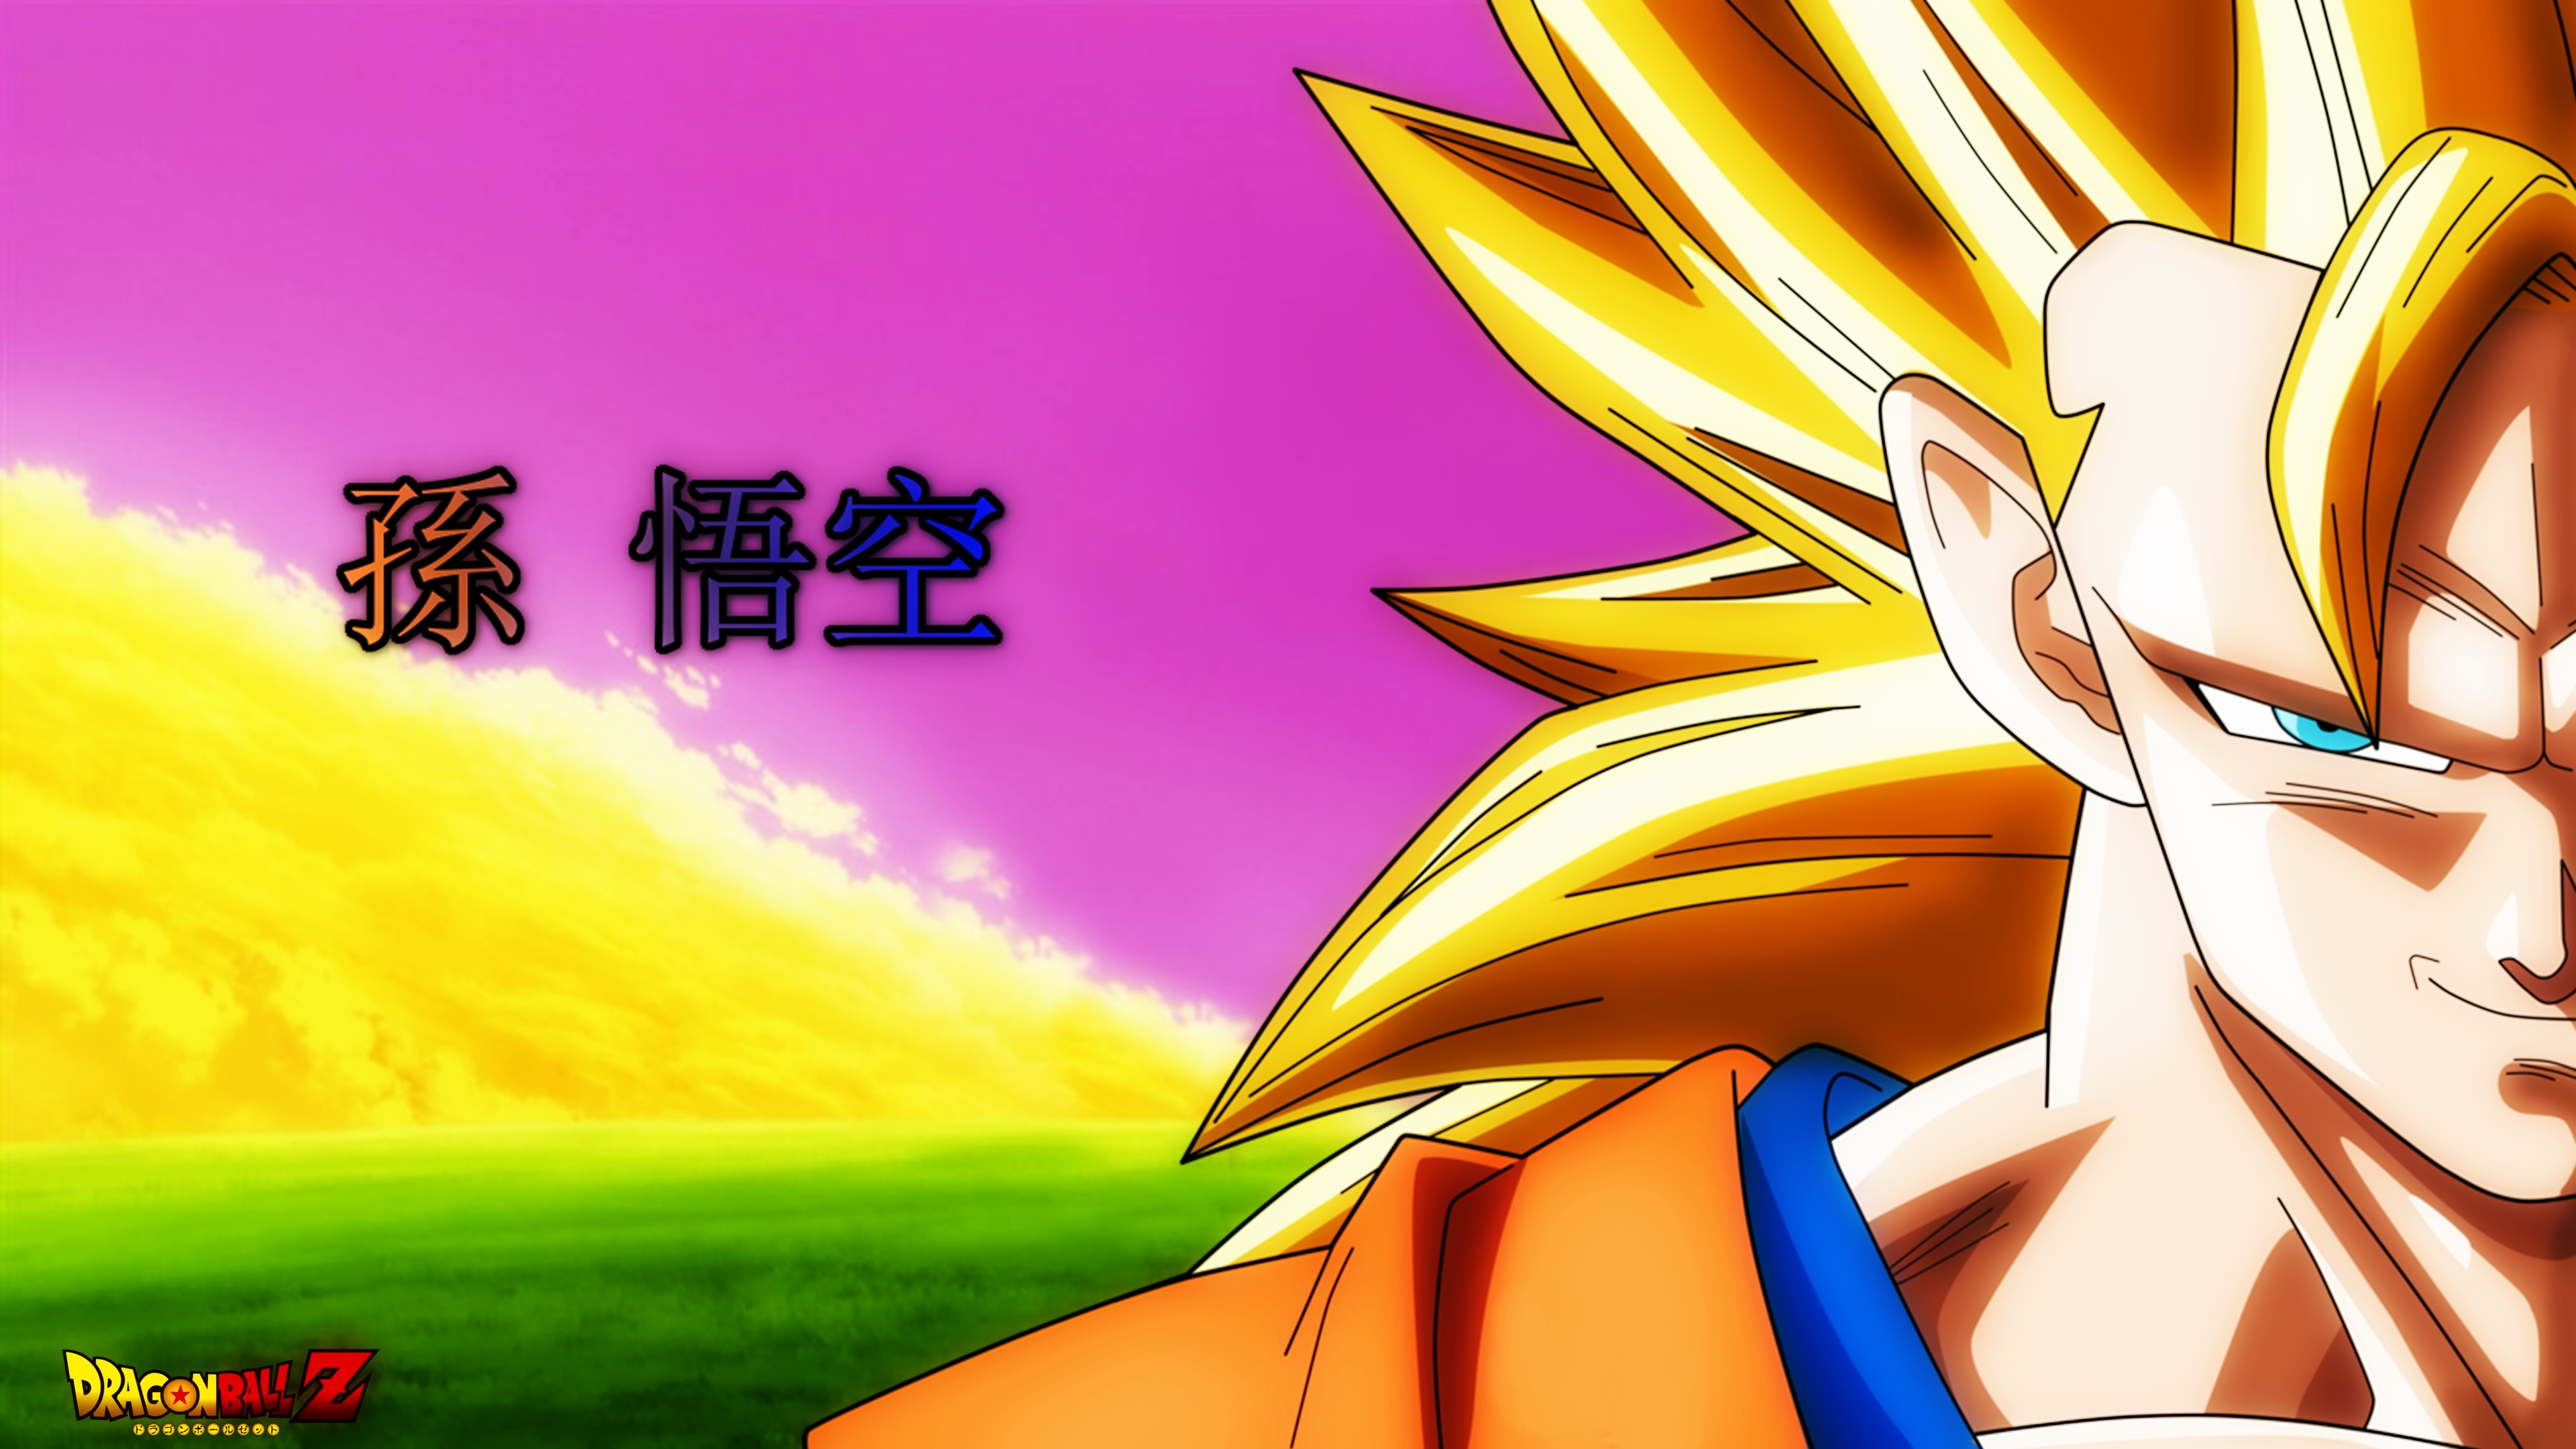 Dragonball Z Goku Super Saiyan 3 Wallpaper 4k By